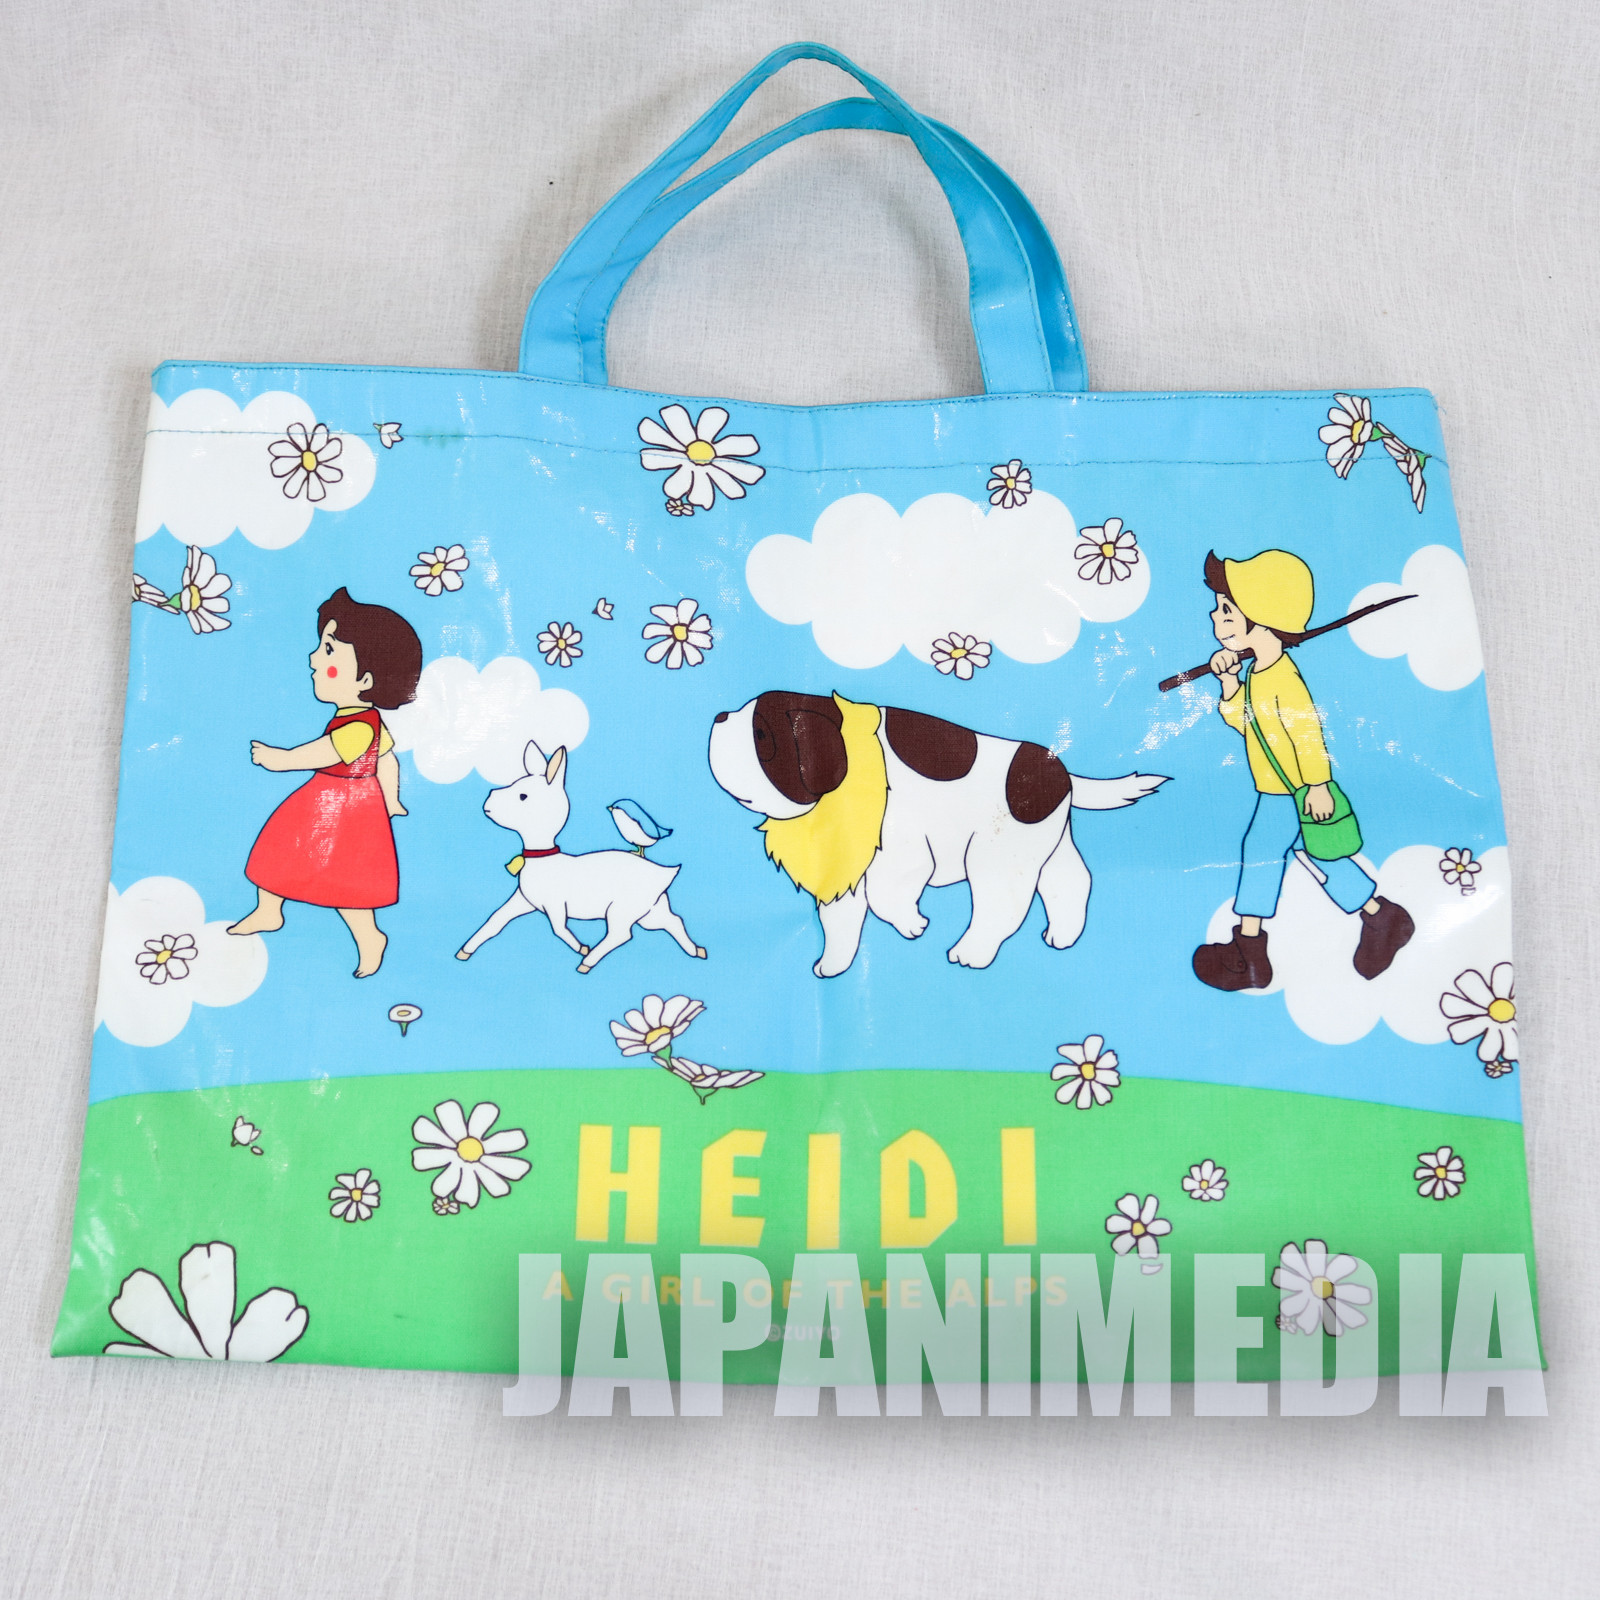 Heidi Girl of the Alps Retro Vinyl Tote Bag 11x15 inch JAPAN ANIME